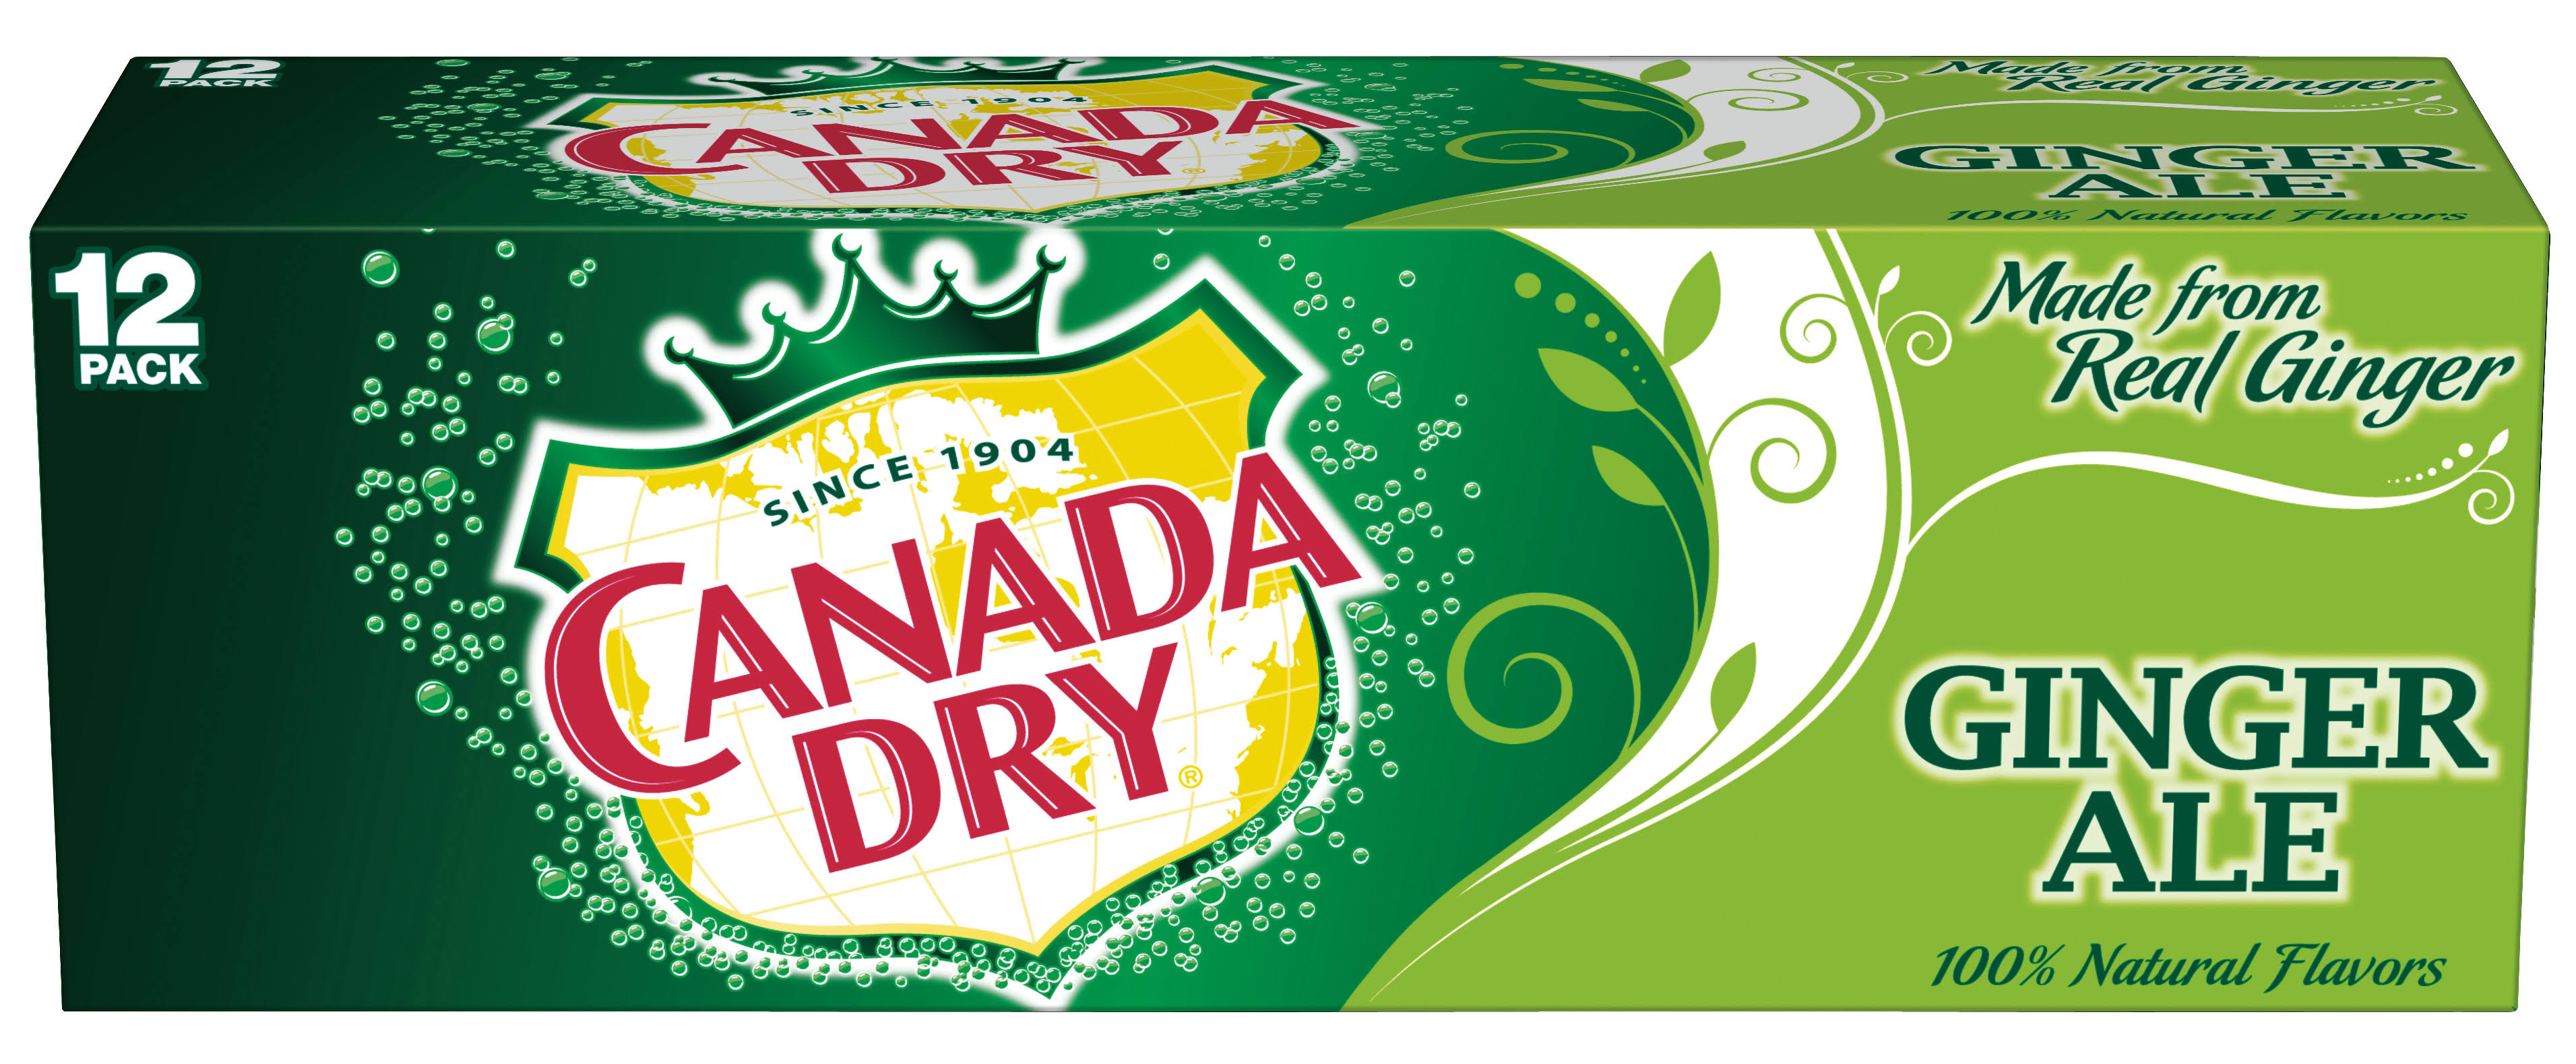 Canada Dry Ginger Ale - 12 ct